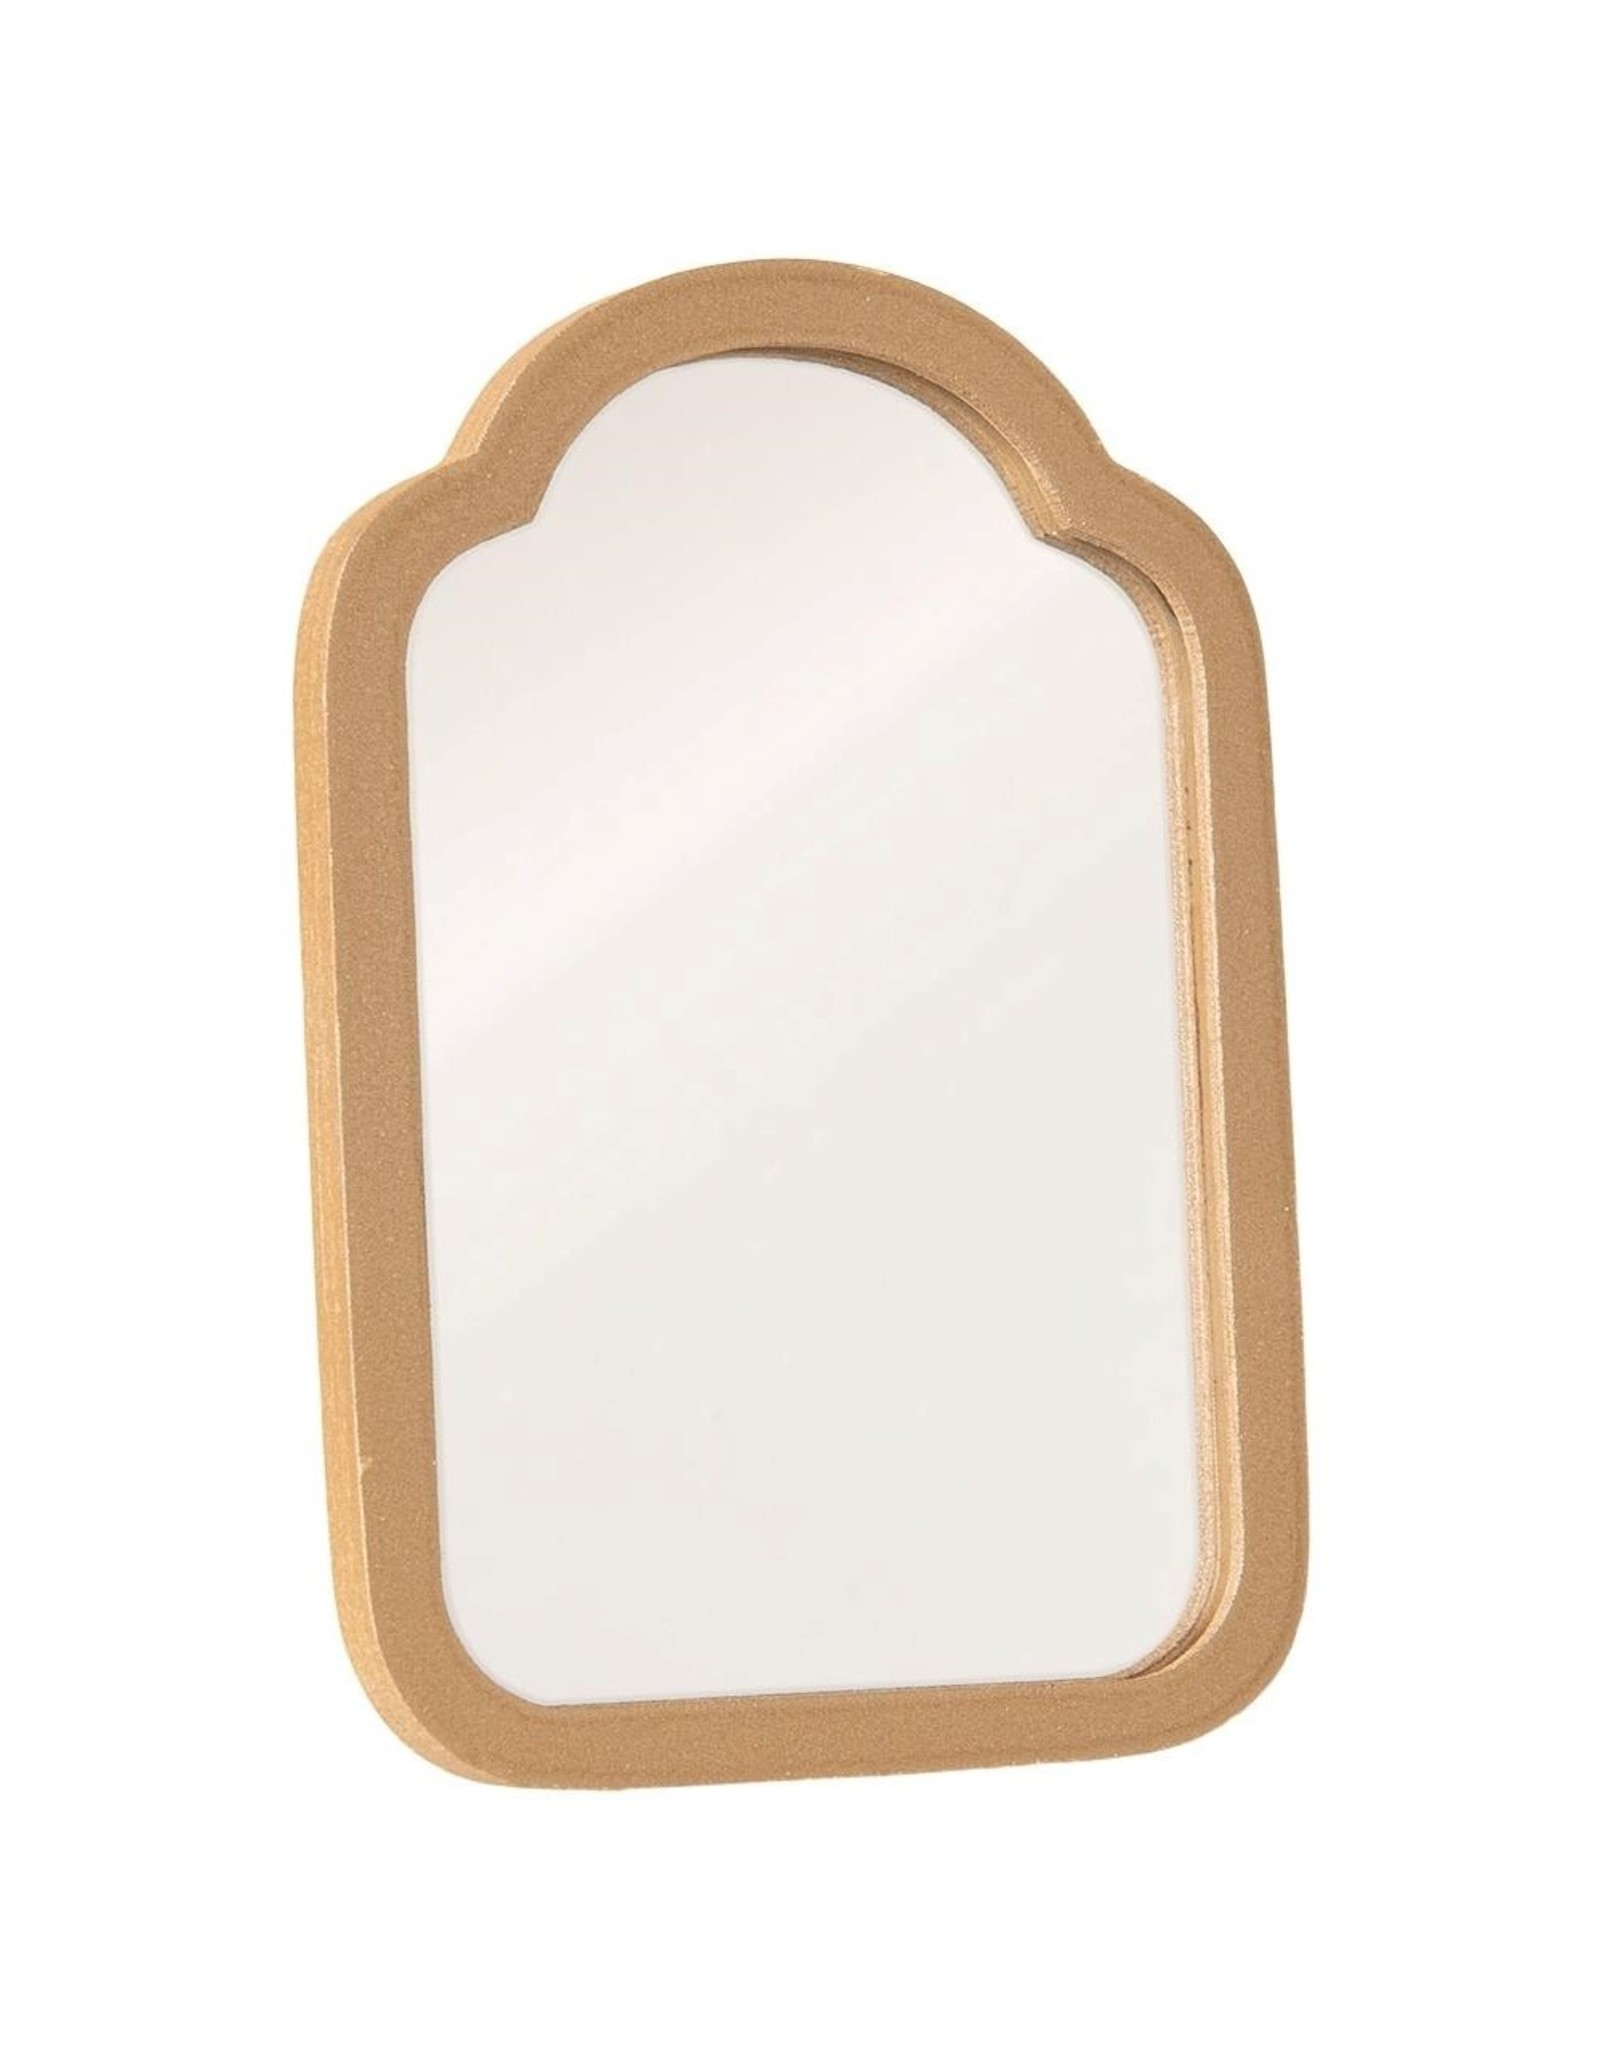 Maileg Miniature Mirror Gold